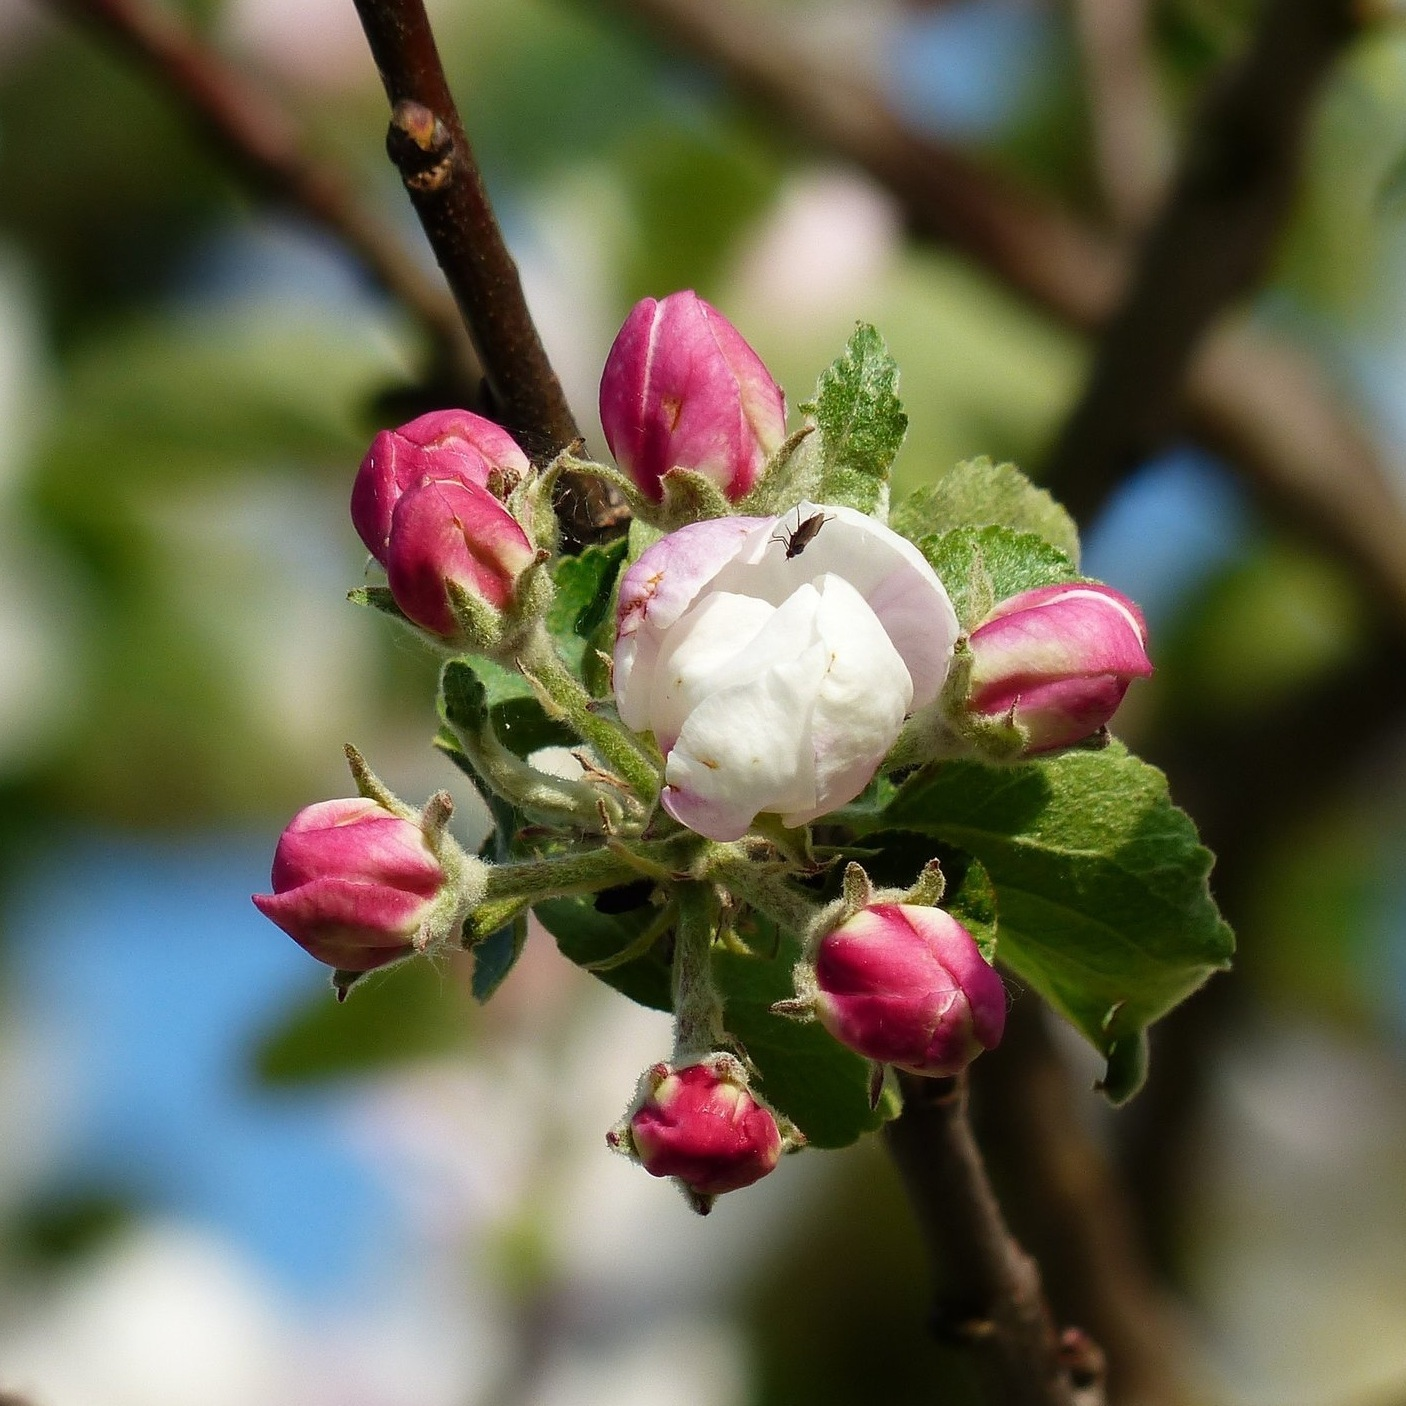 apple-blossom-apple-tree-blossom-bloom-67815.jpg